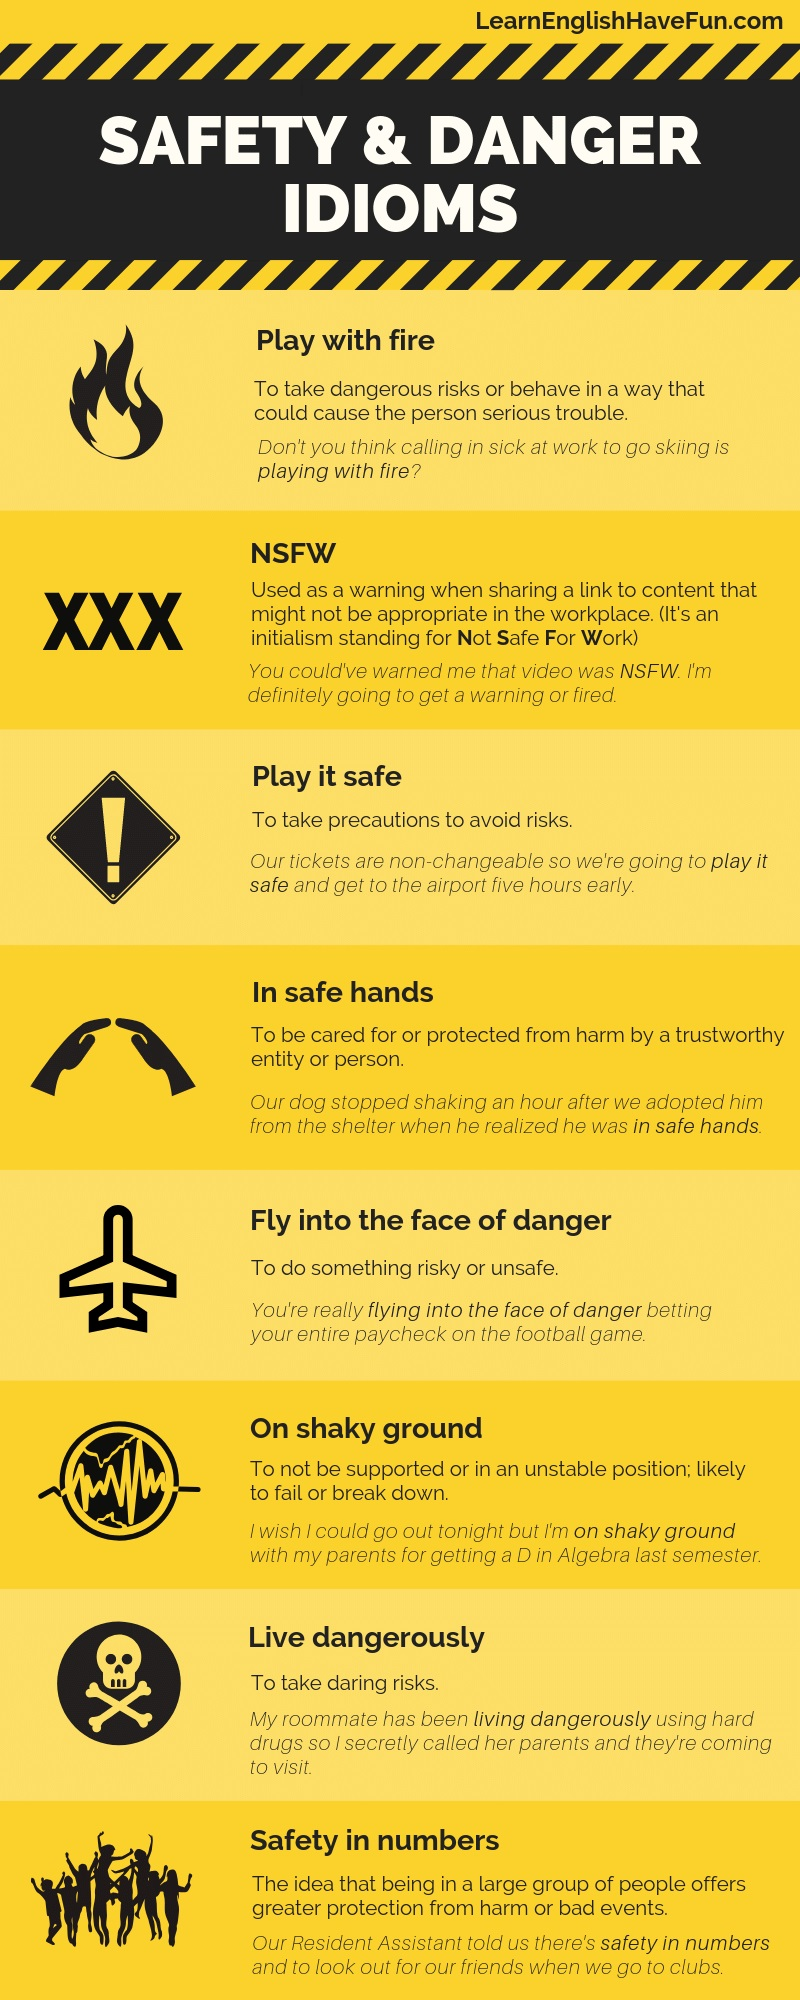 An infographic listing the 8 safety and danger idioms listed on this webpage with example sentences.